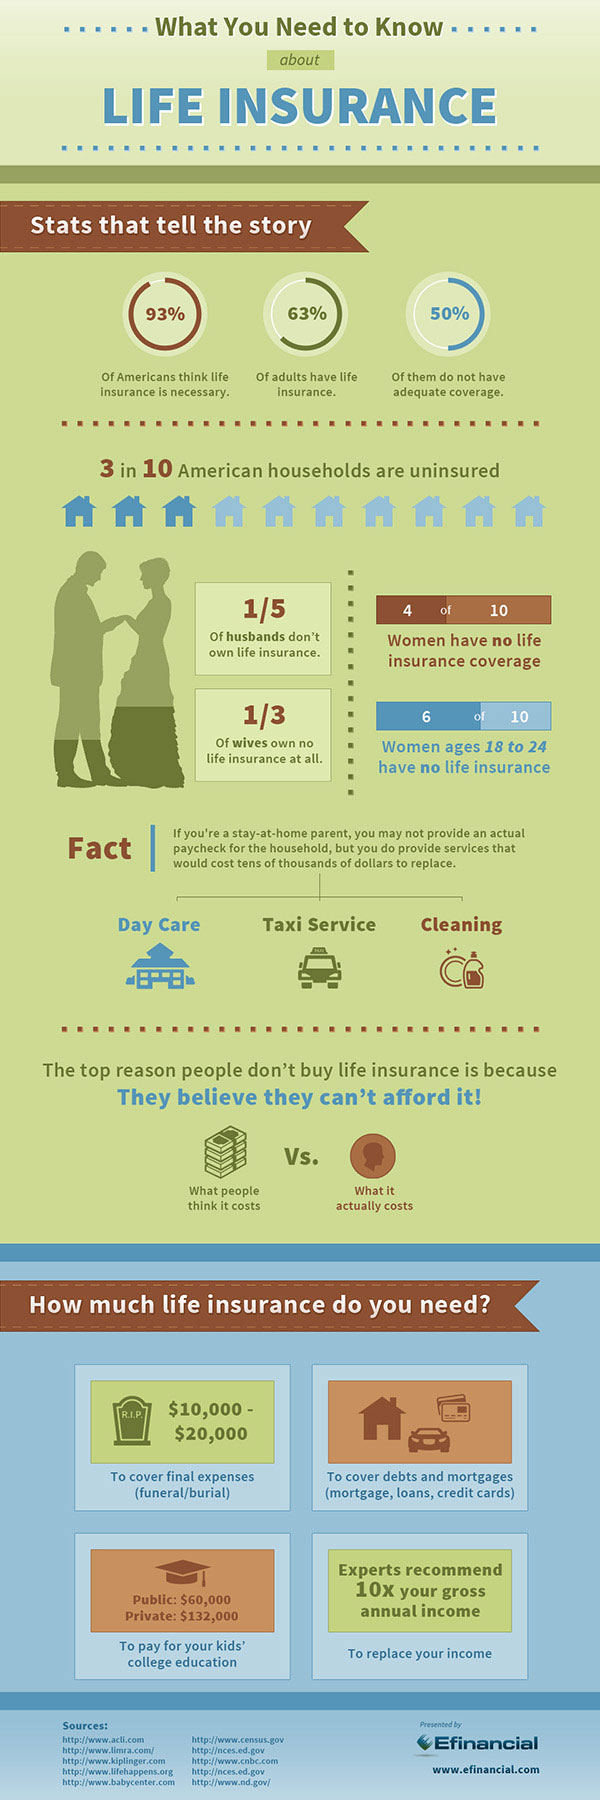 Elephant Auto Insurance Quote Interesting What You Should Know About Life Insurance Infographic  Sfgate . Design Inspiration